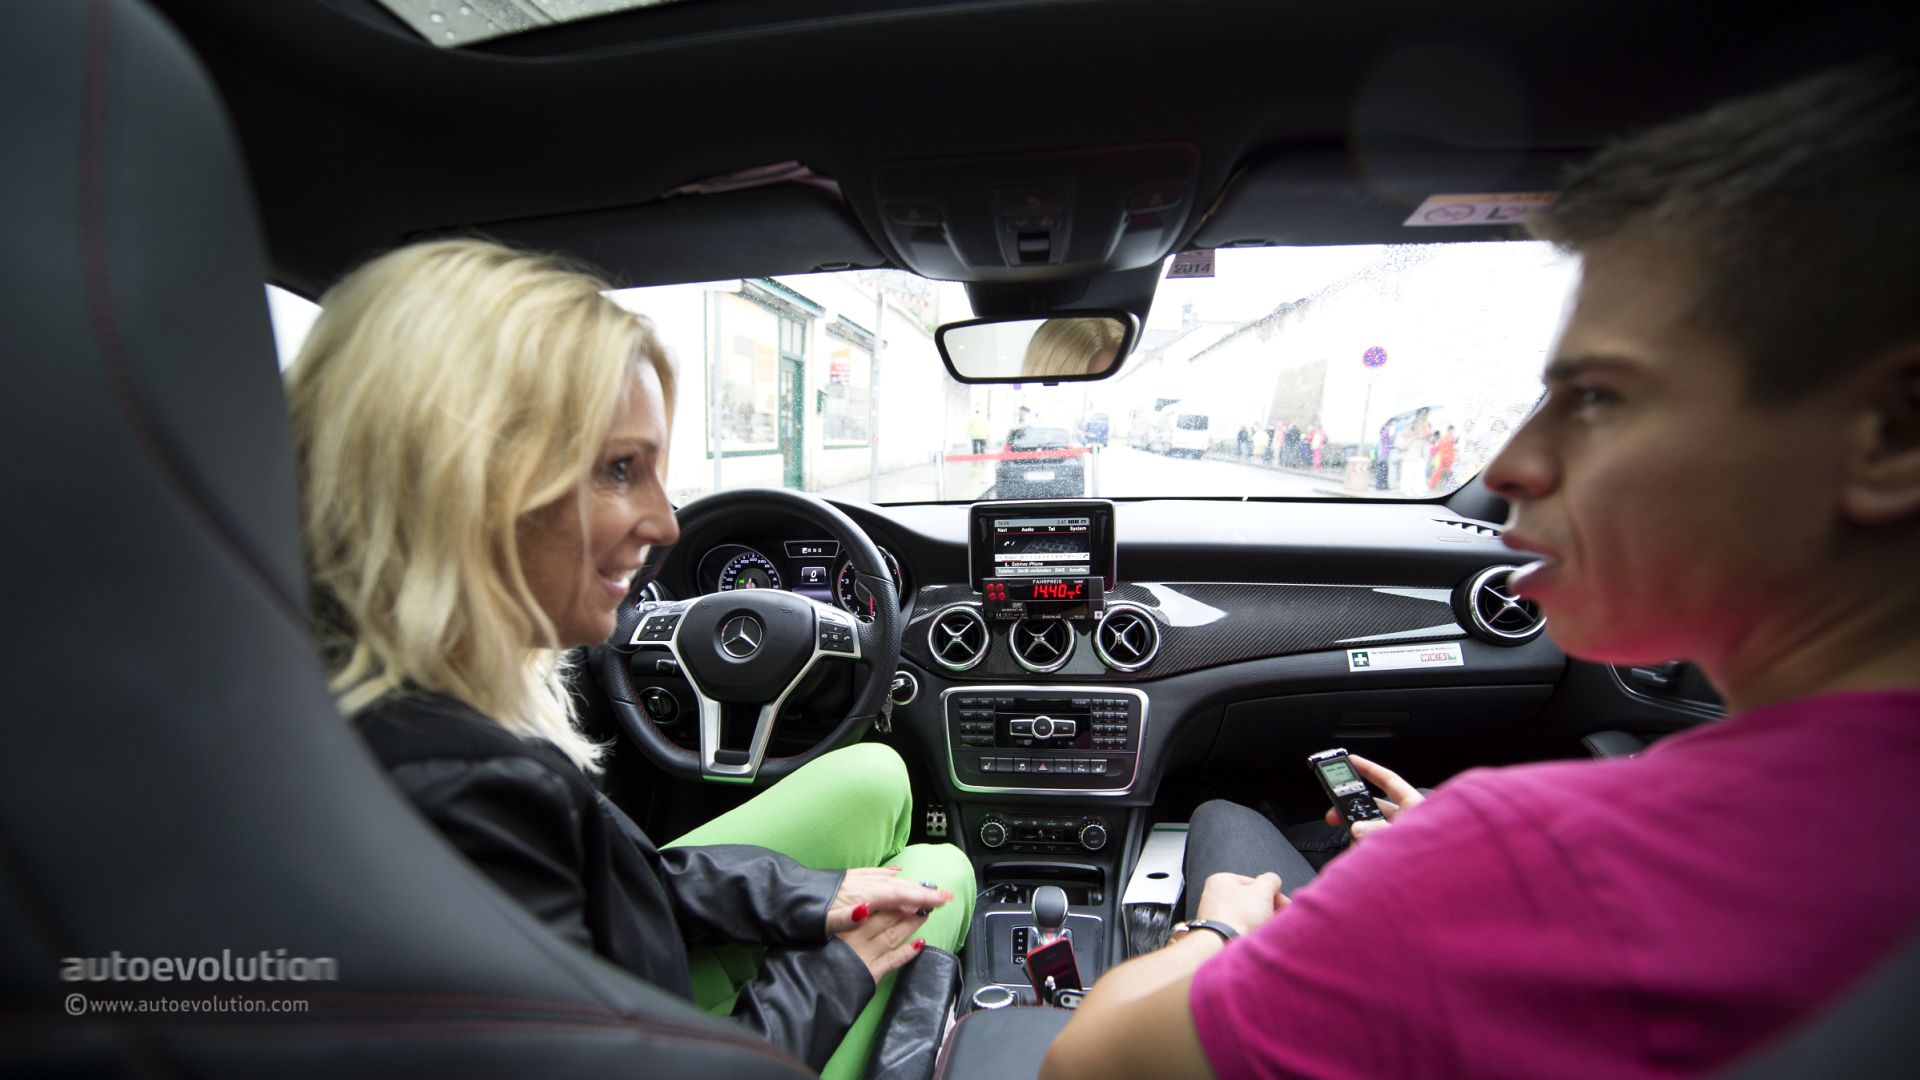 First Cla 45 Amg Taxi Is Owned And Driven By A Woman